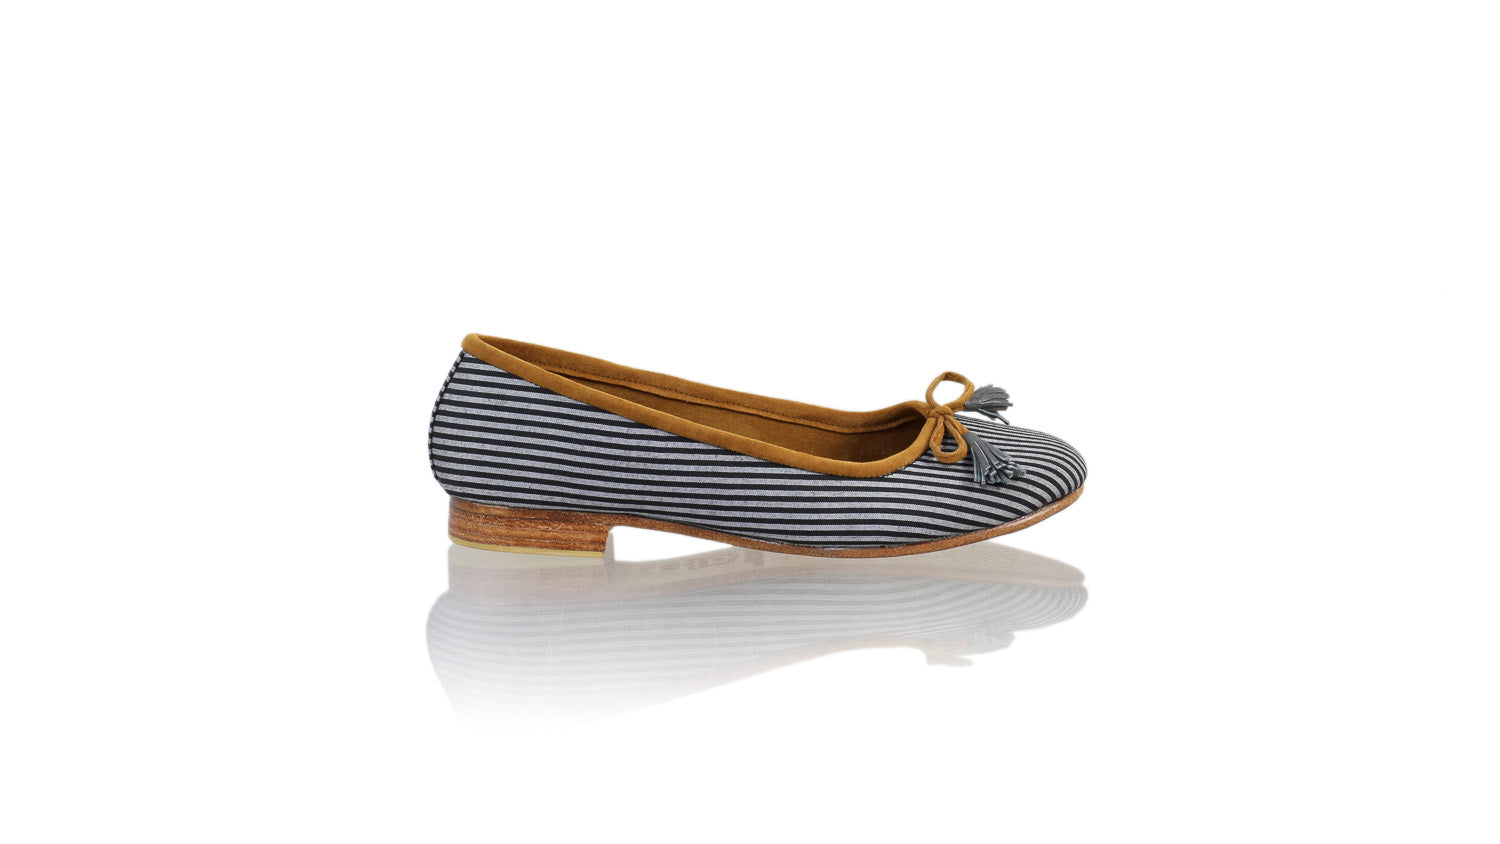 Leather-shoes-Noemi 20mm Ballet - Grey & Black Lines Handwoven Fabric-flats ballet-NILUH DJELANTIK-NILUH DJELANTIK